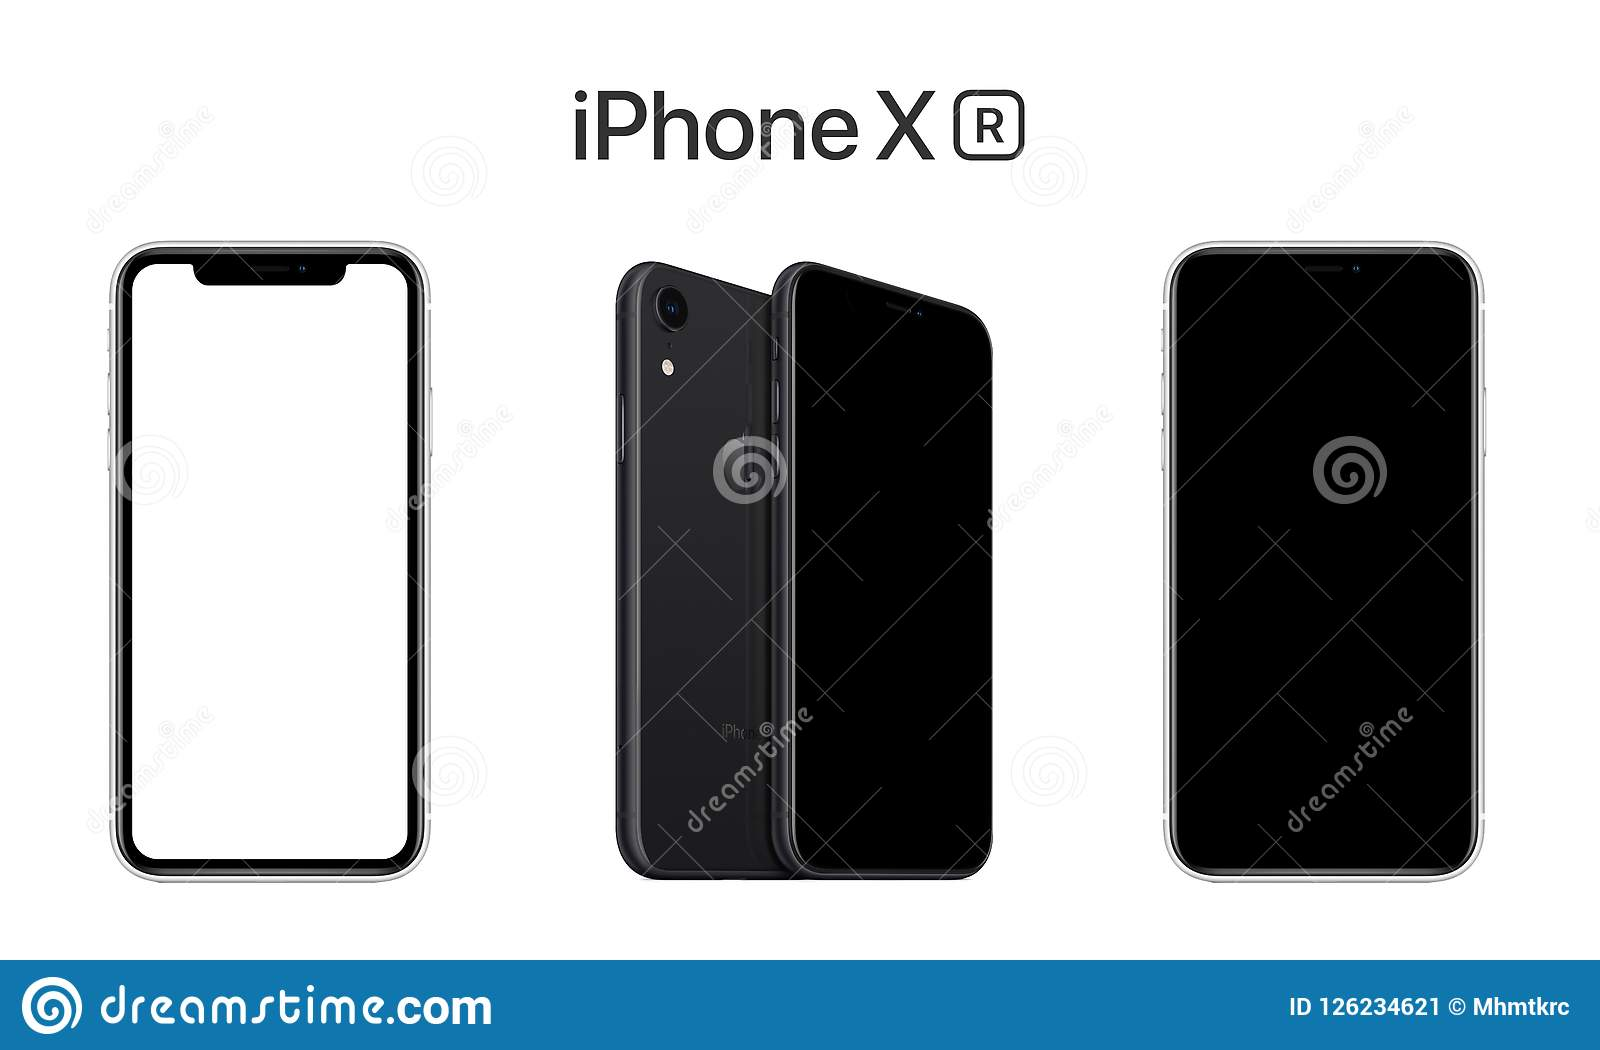 Apple iPhone XR Front View, Black and White Screens with Clipping Paths